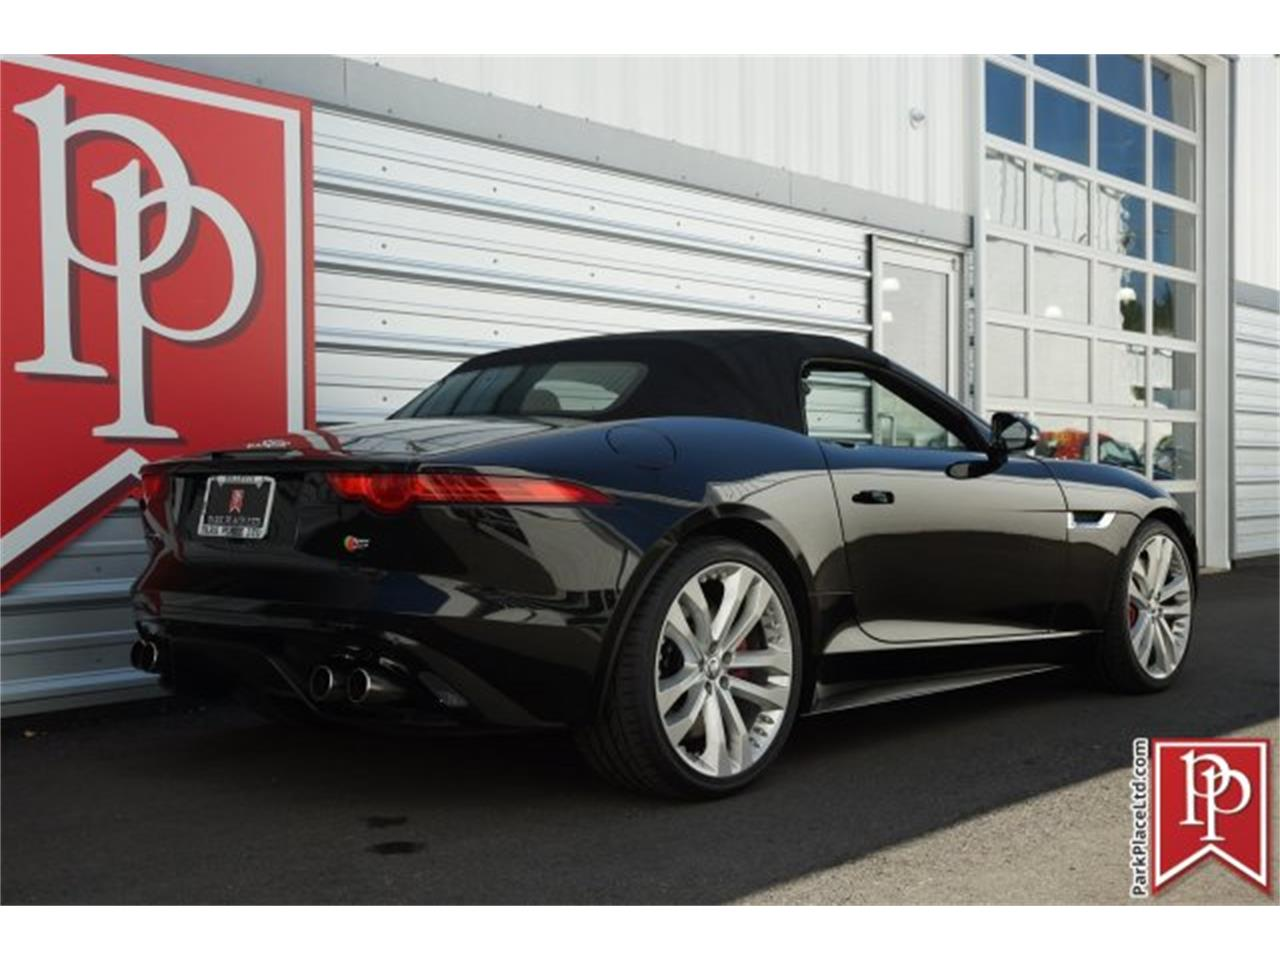 Large Picture of 2014 Jaguar F-Type located in Washington - $43,950.00 Offered by Park Place Ltd - L530